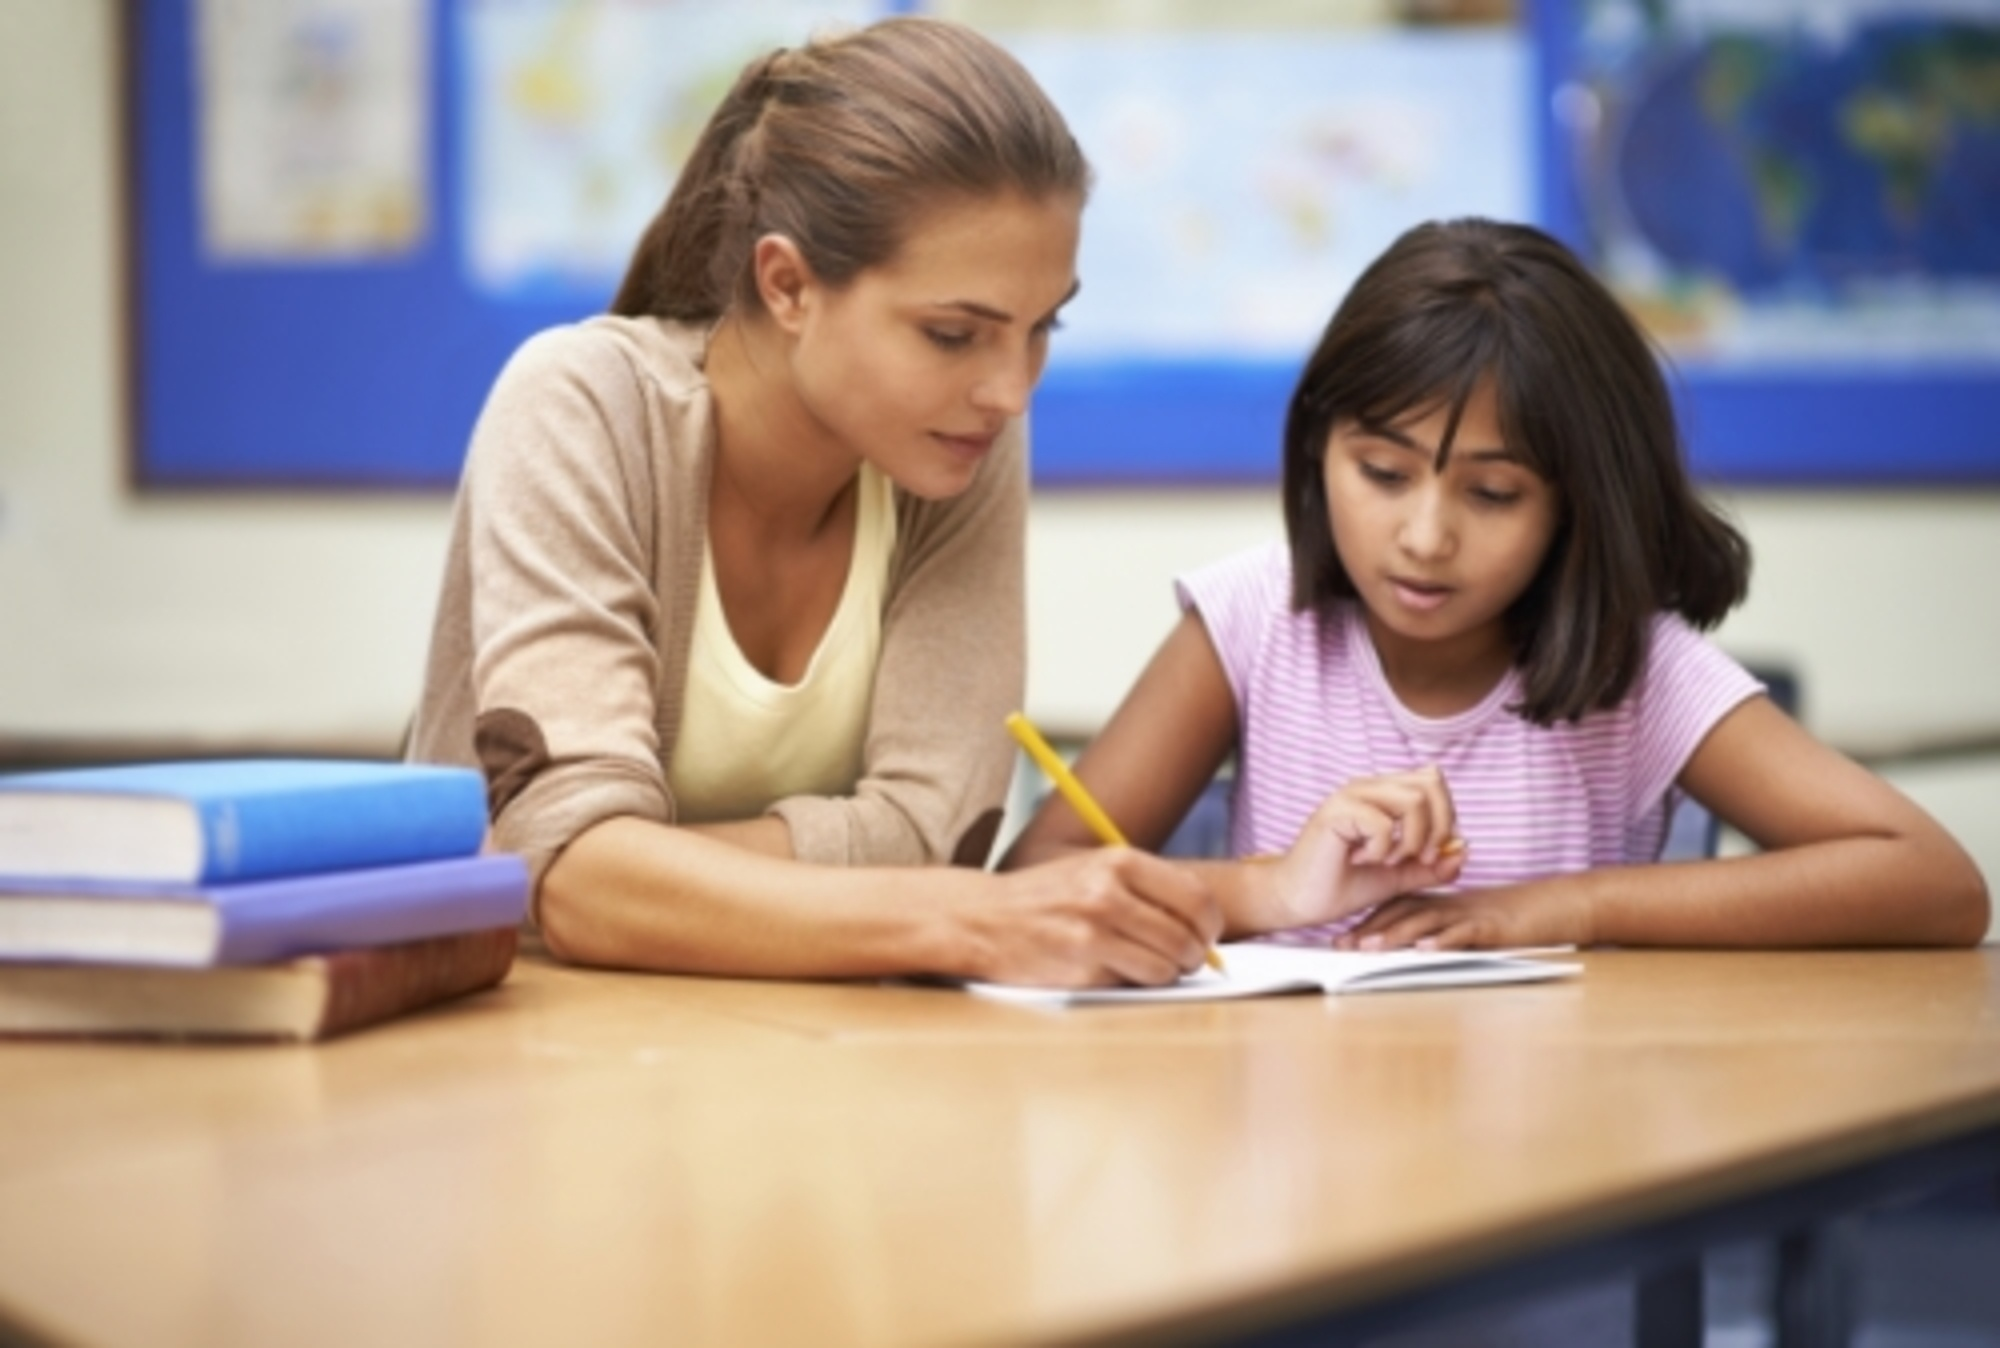 Do You Really Need to Enroll Your Child to a NAPLAN Tuition?